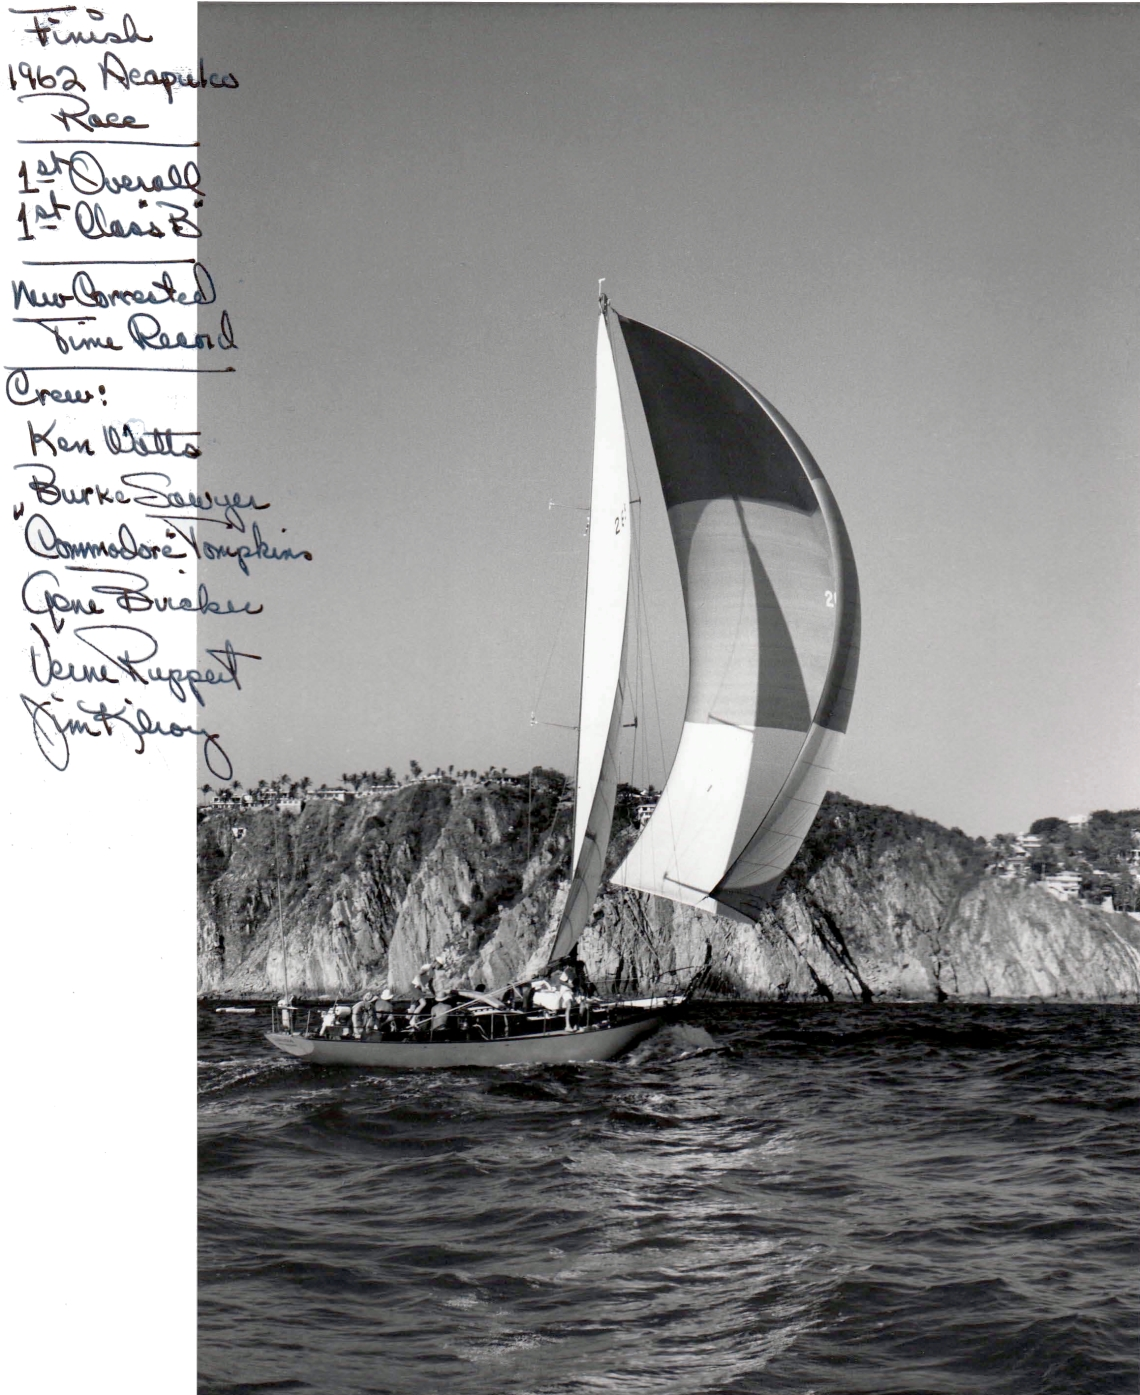 Kialoa 1 at the finish of the 1962 Acapulco Race